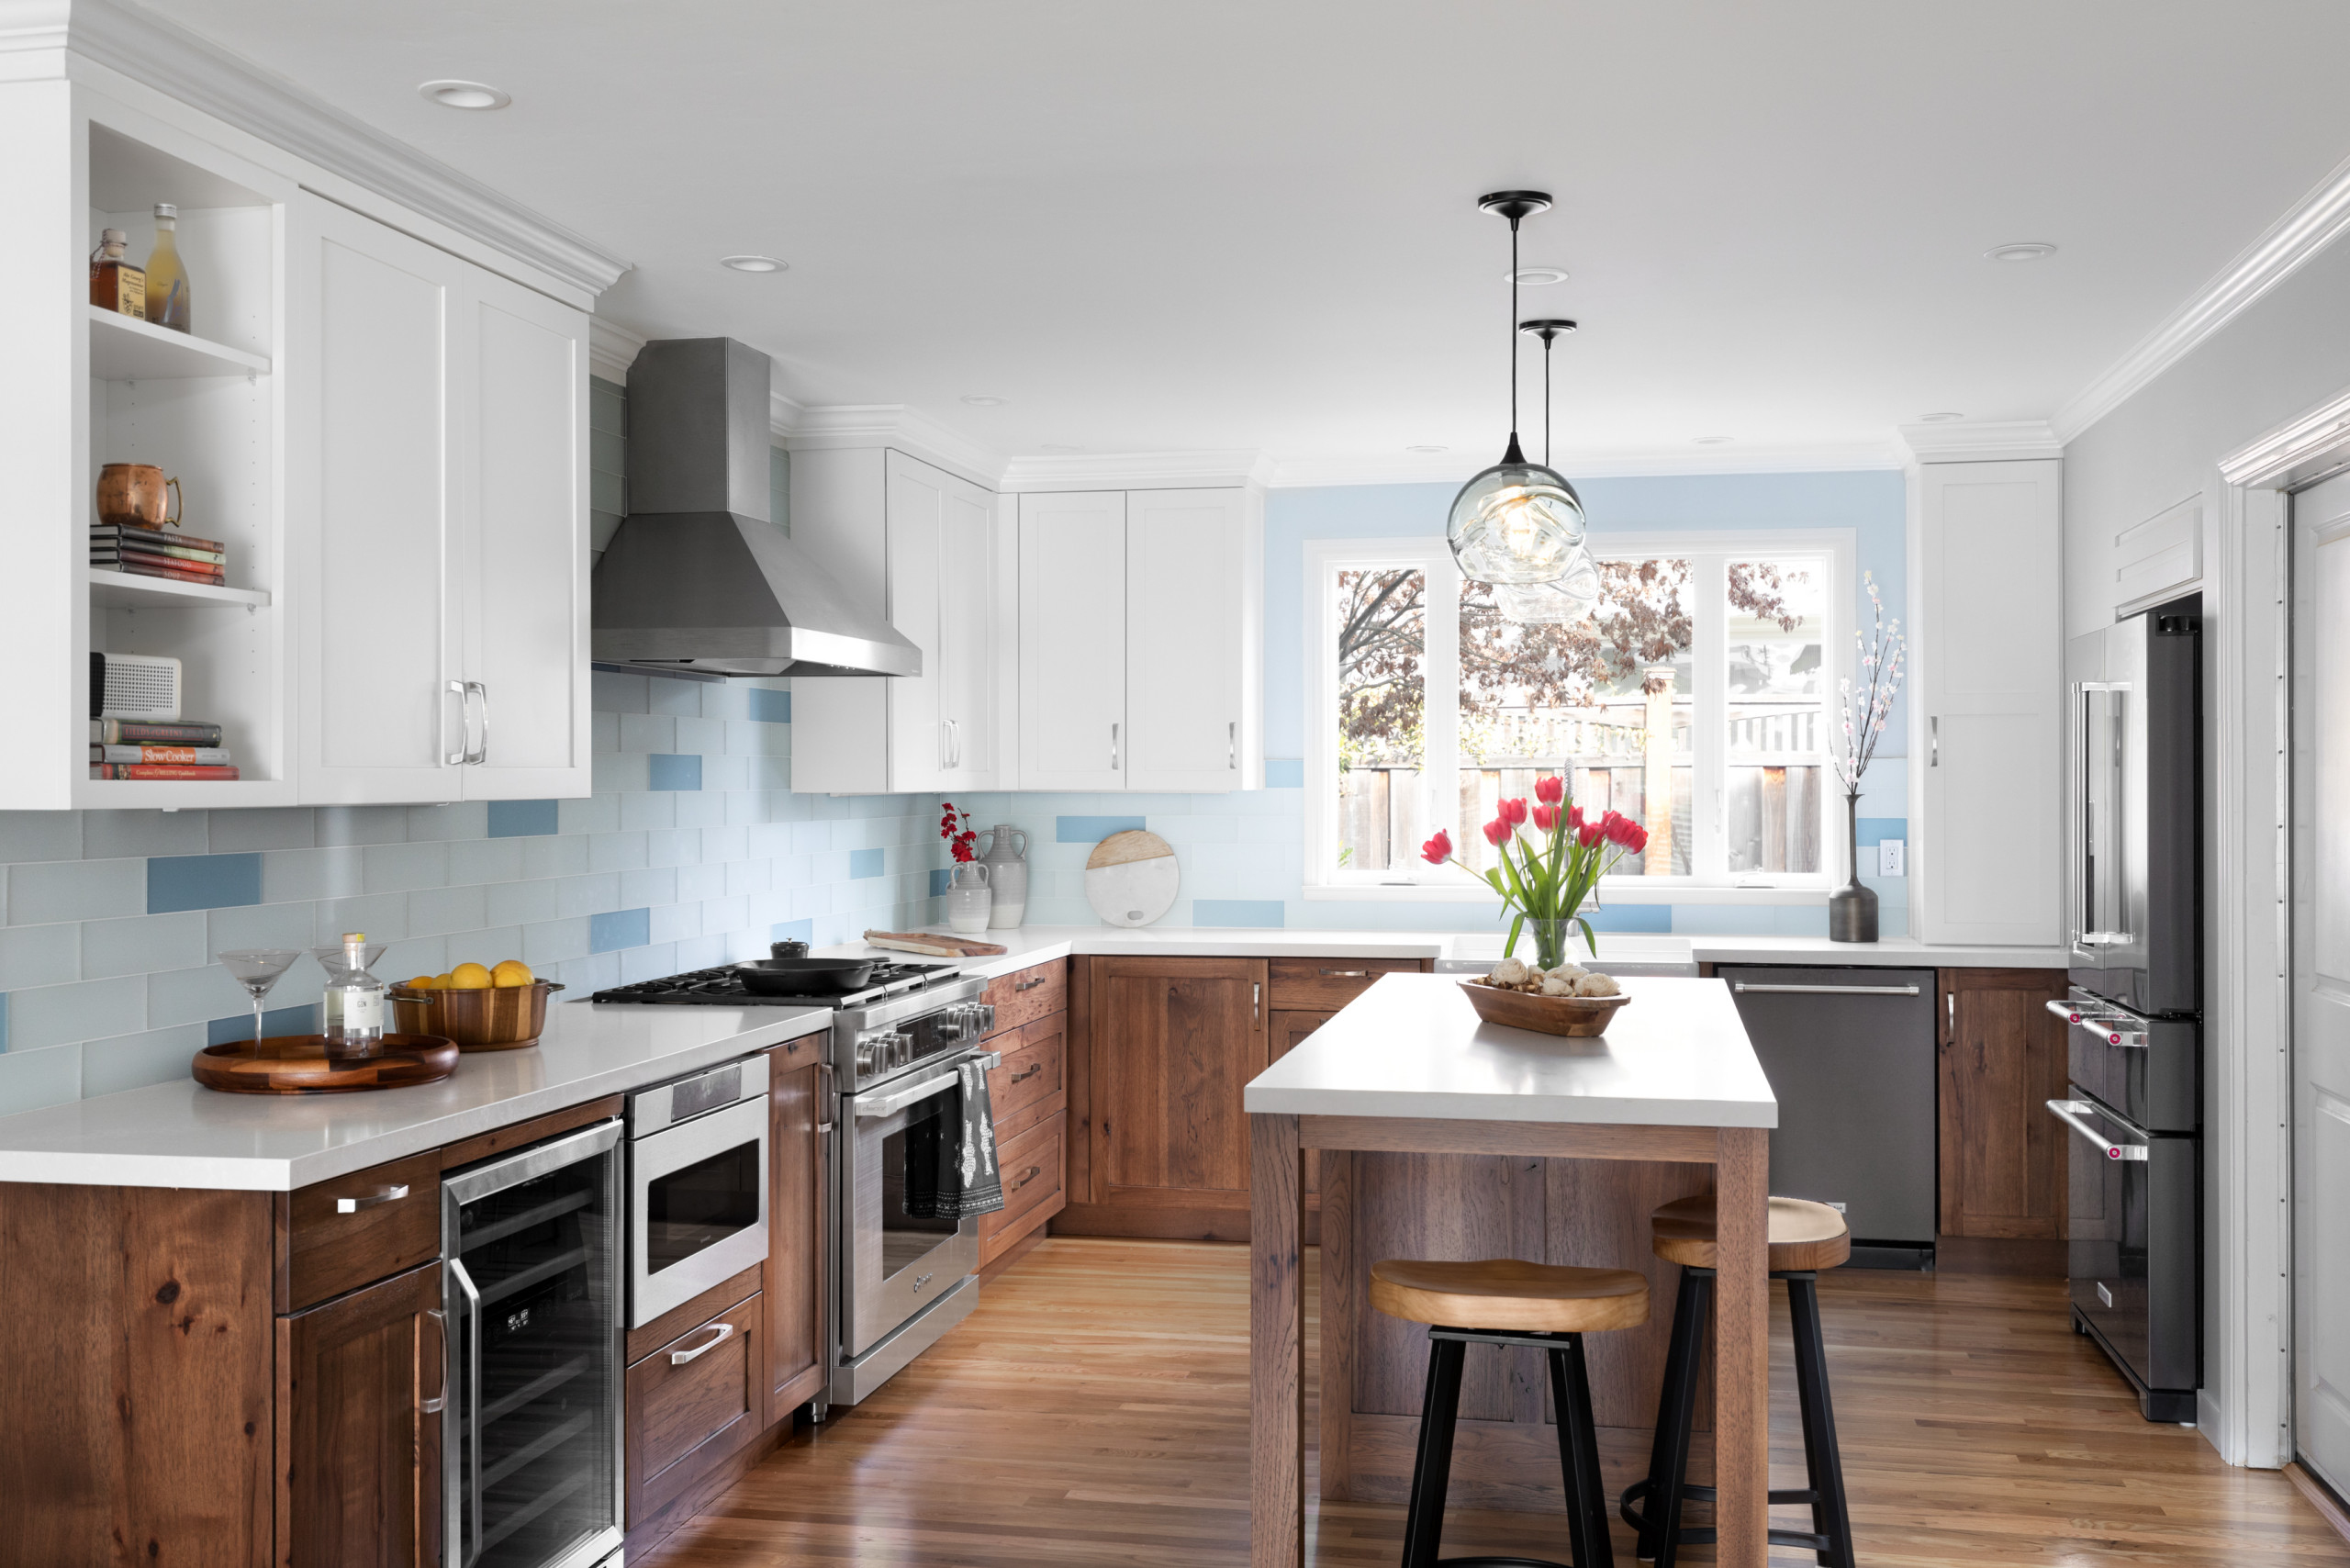 18 Beautiful L Shaped Kitchen Pictures Ideas October 2020 Houzz